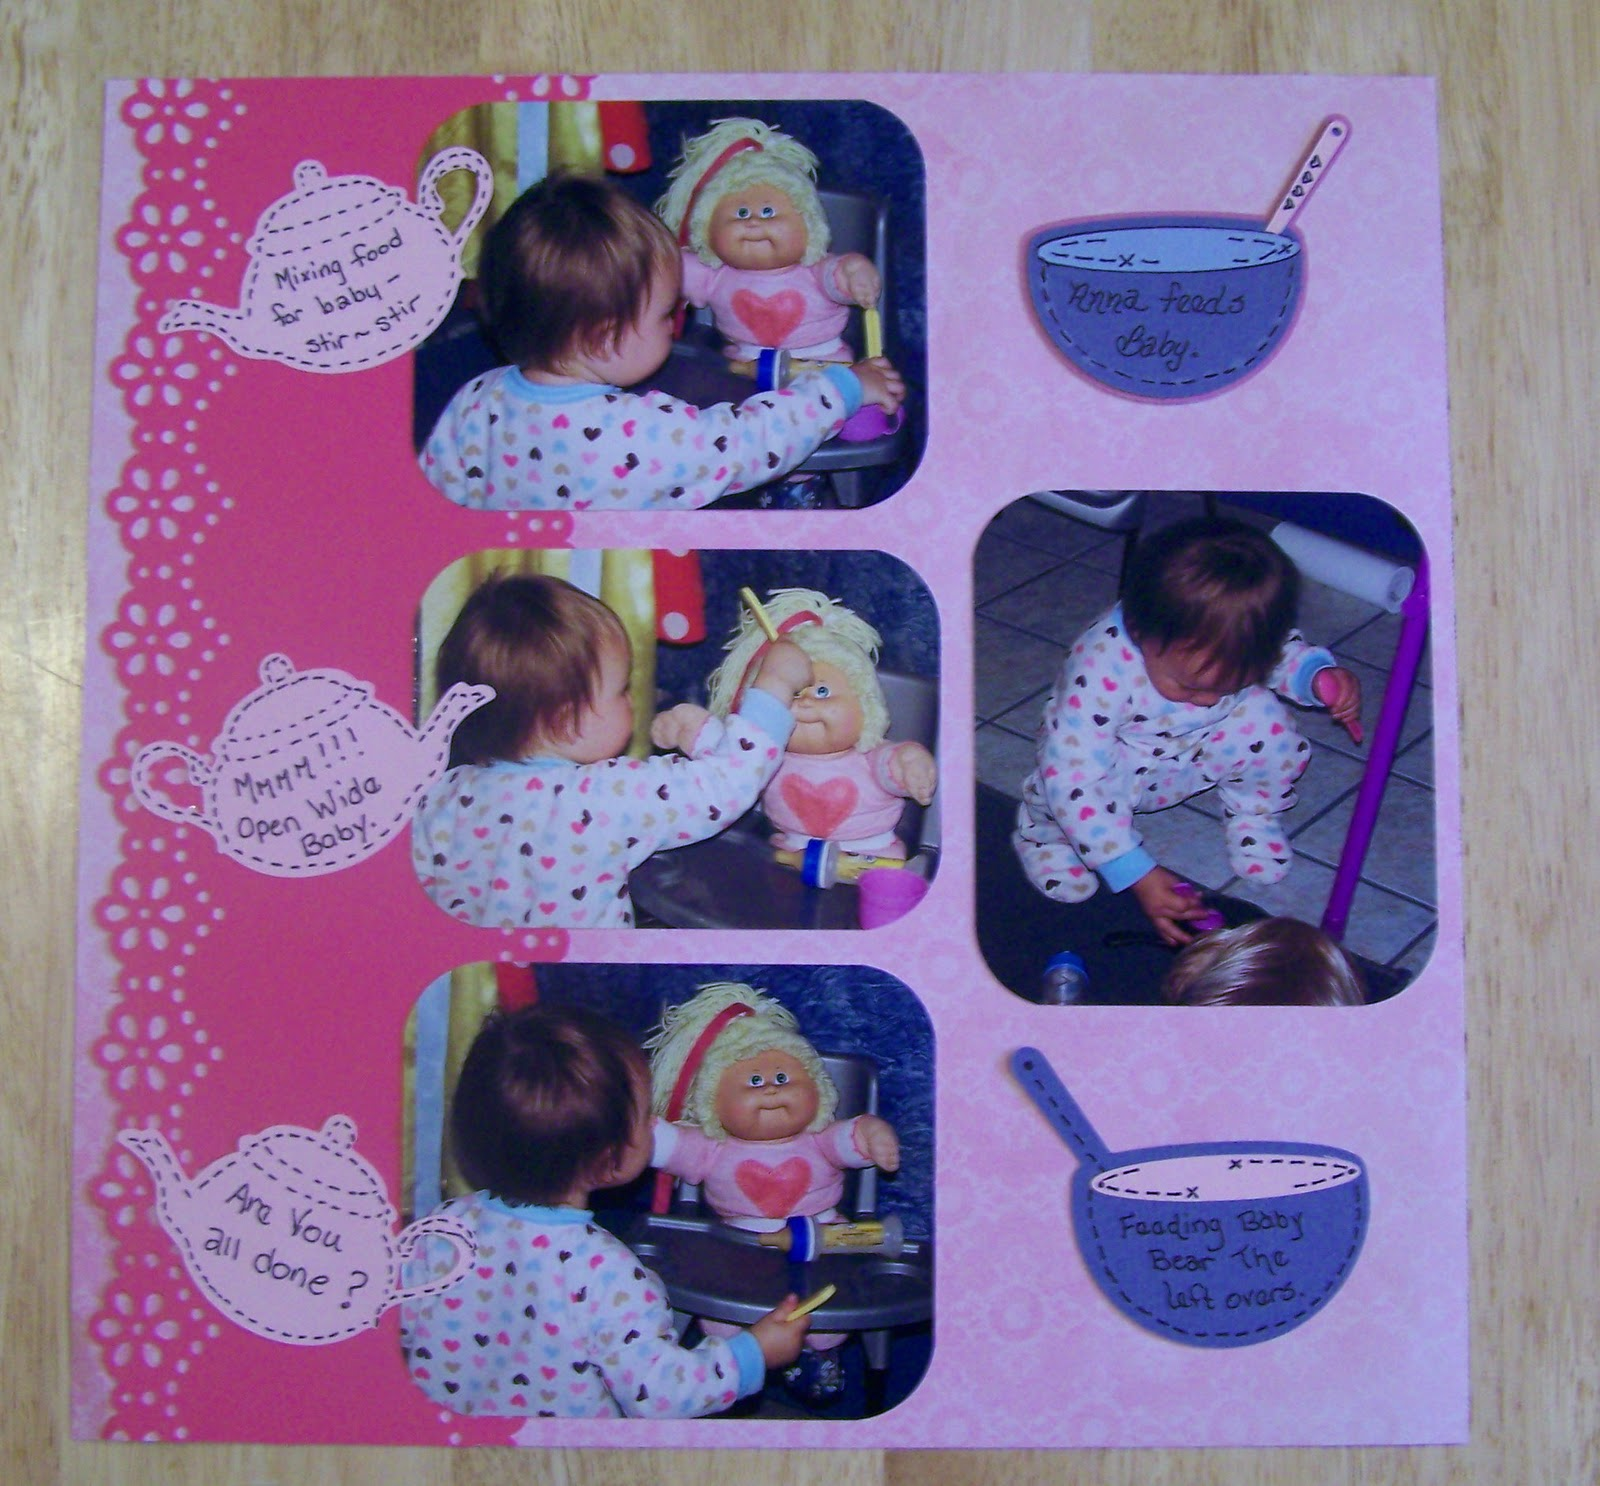 Scrapbook paper cooking - In This Layout I Captured Her Feeding Her Baby And Baby Bear Our Yorkie And Cooking Dinner Having A Tea Party I Just Loved All The Expressions On Her